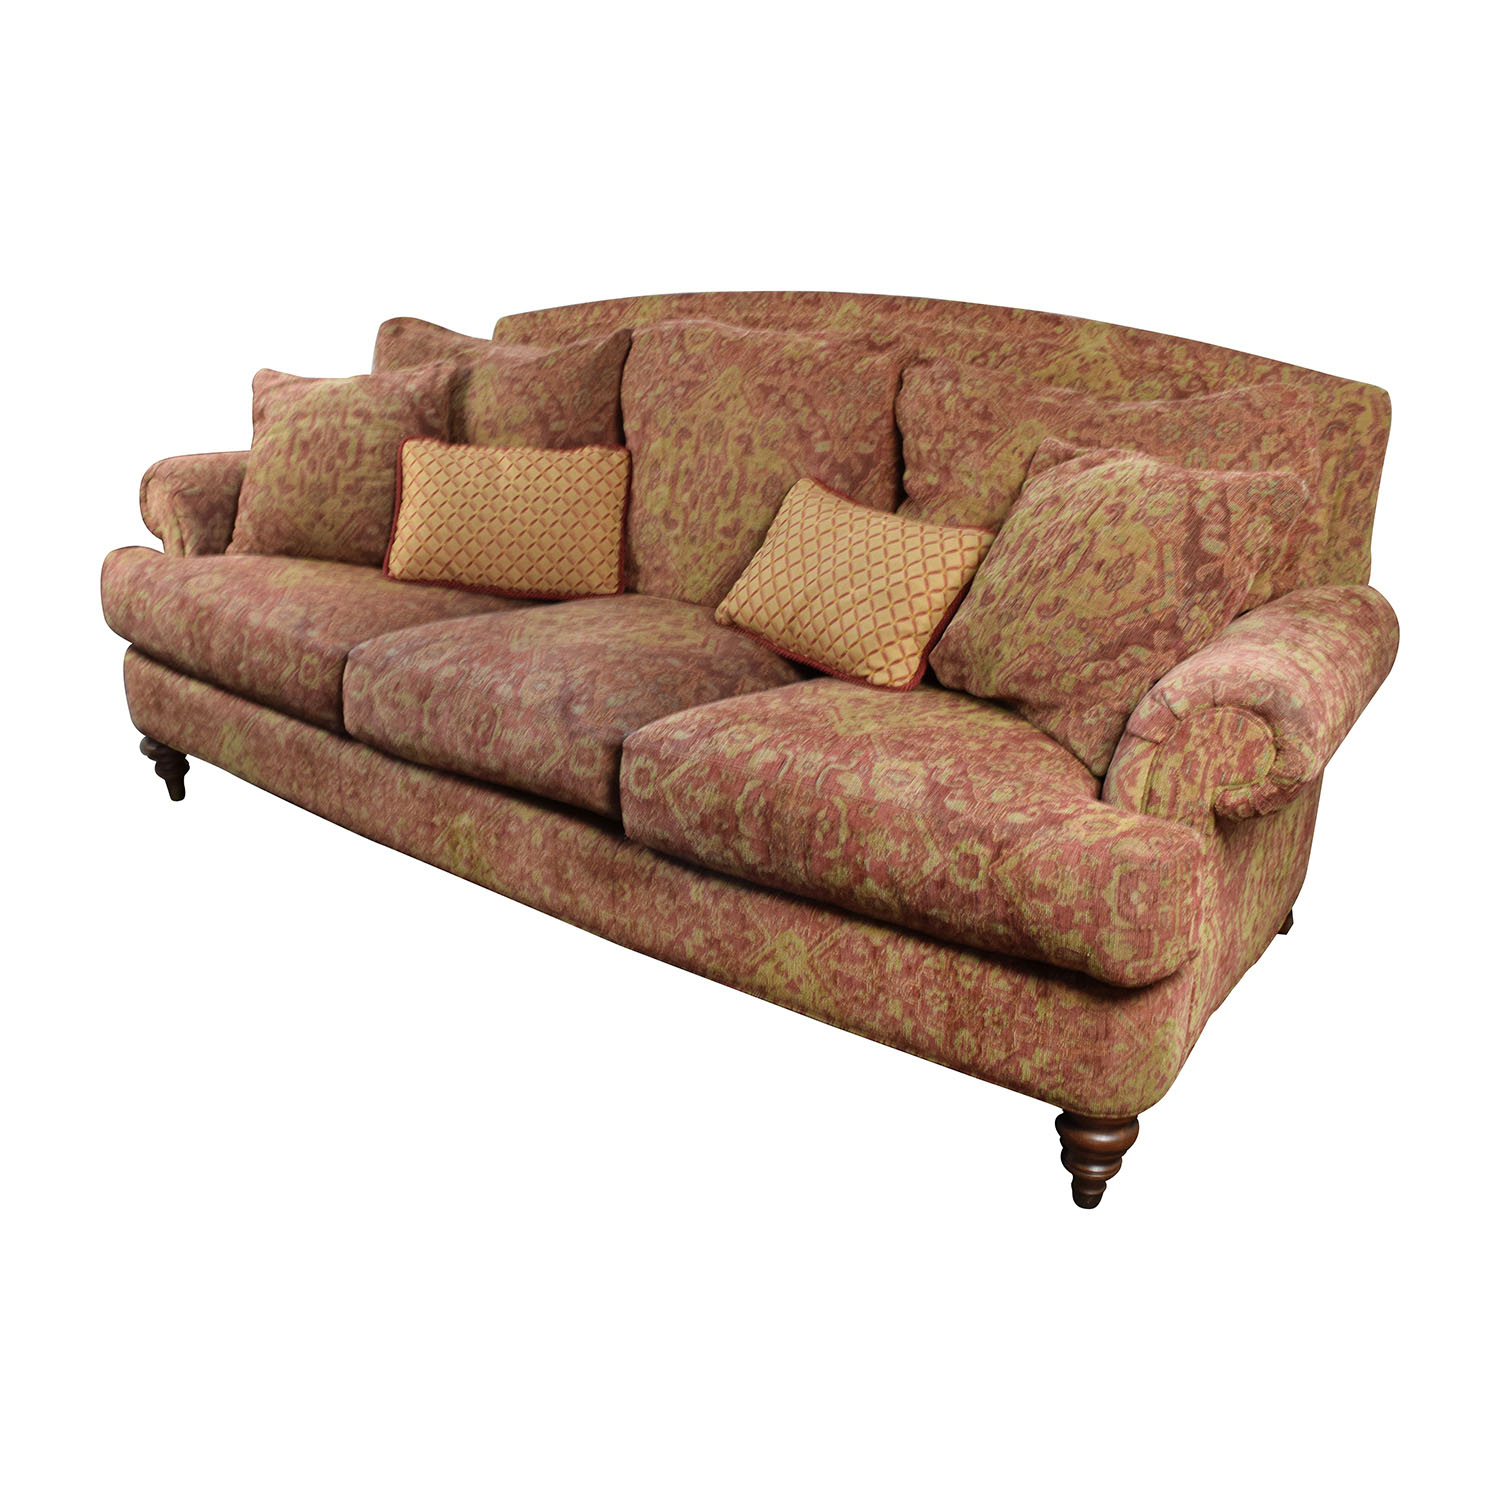 85% Off – Ethan Allen Ethan Allen Paisley Sofa With Toss Inside Ethan Allen Sofas And Chairs (View 4 of 15)